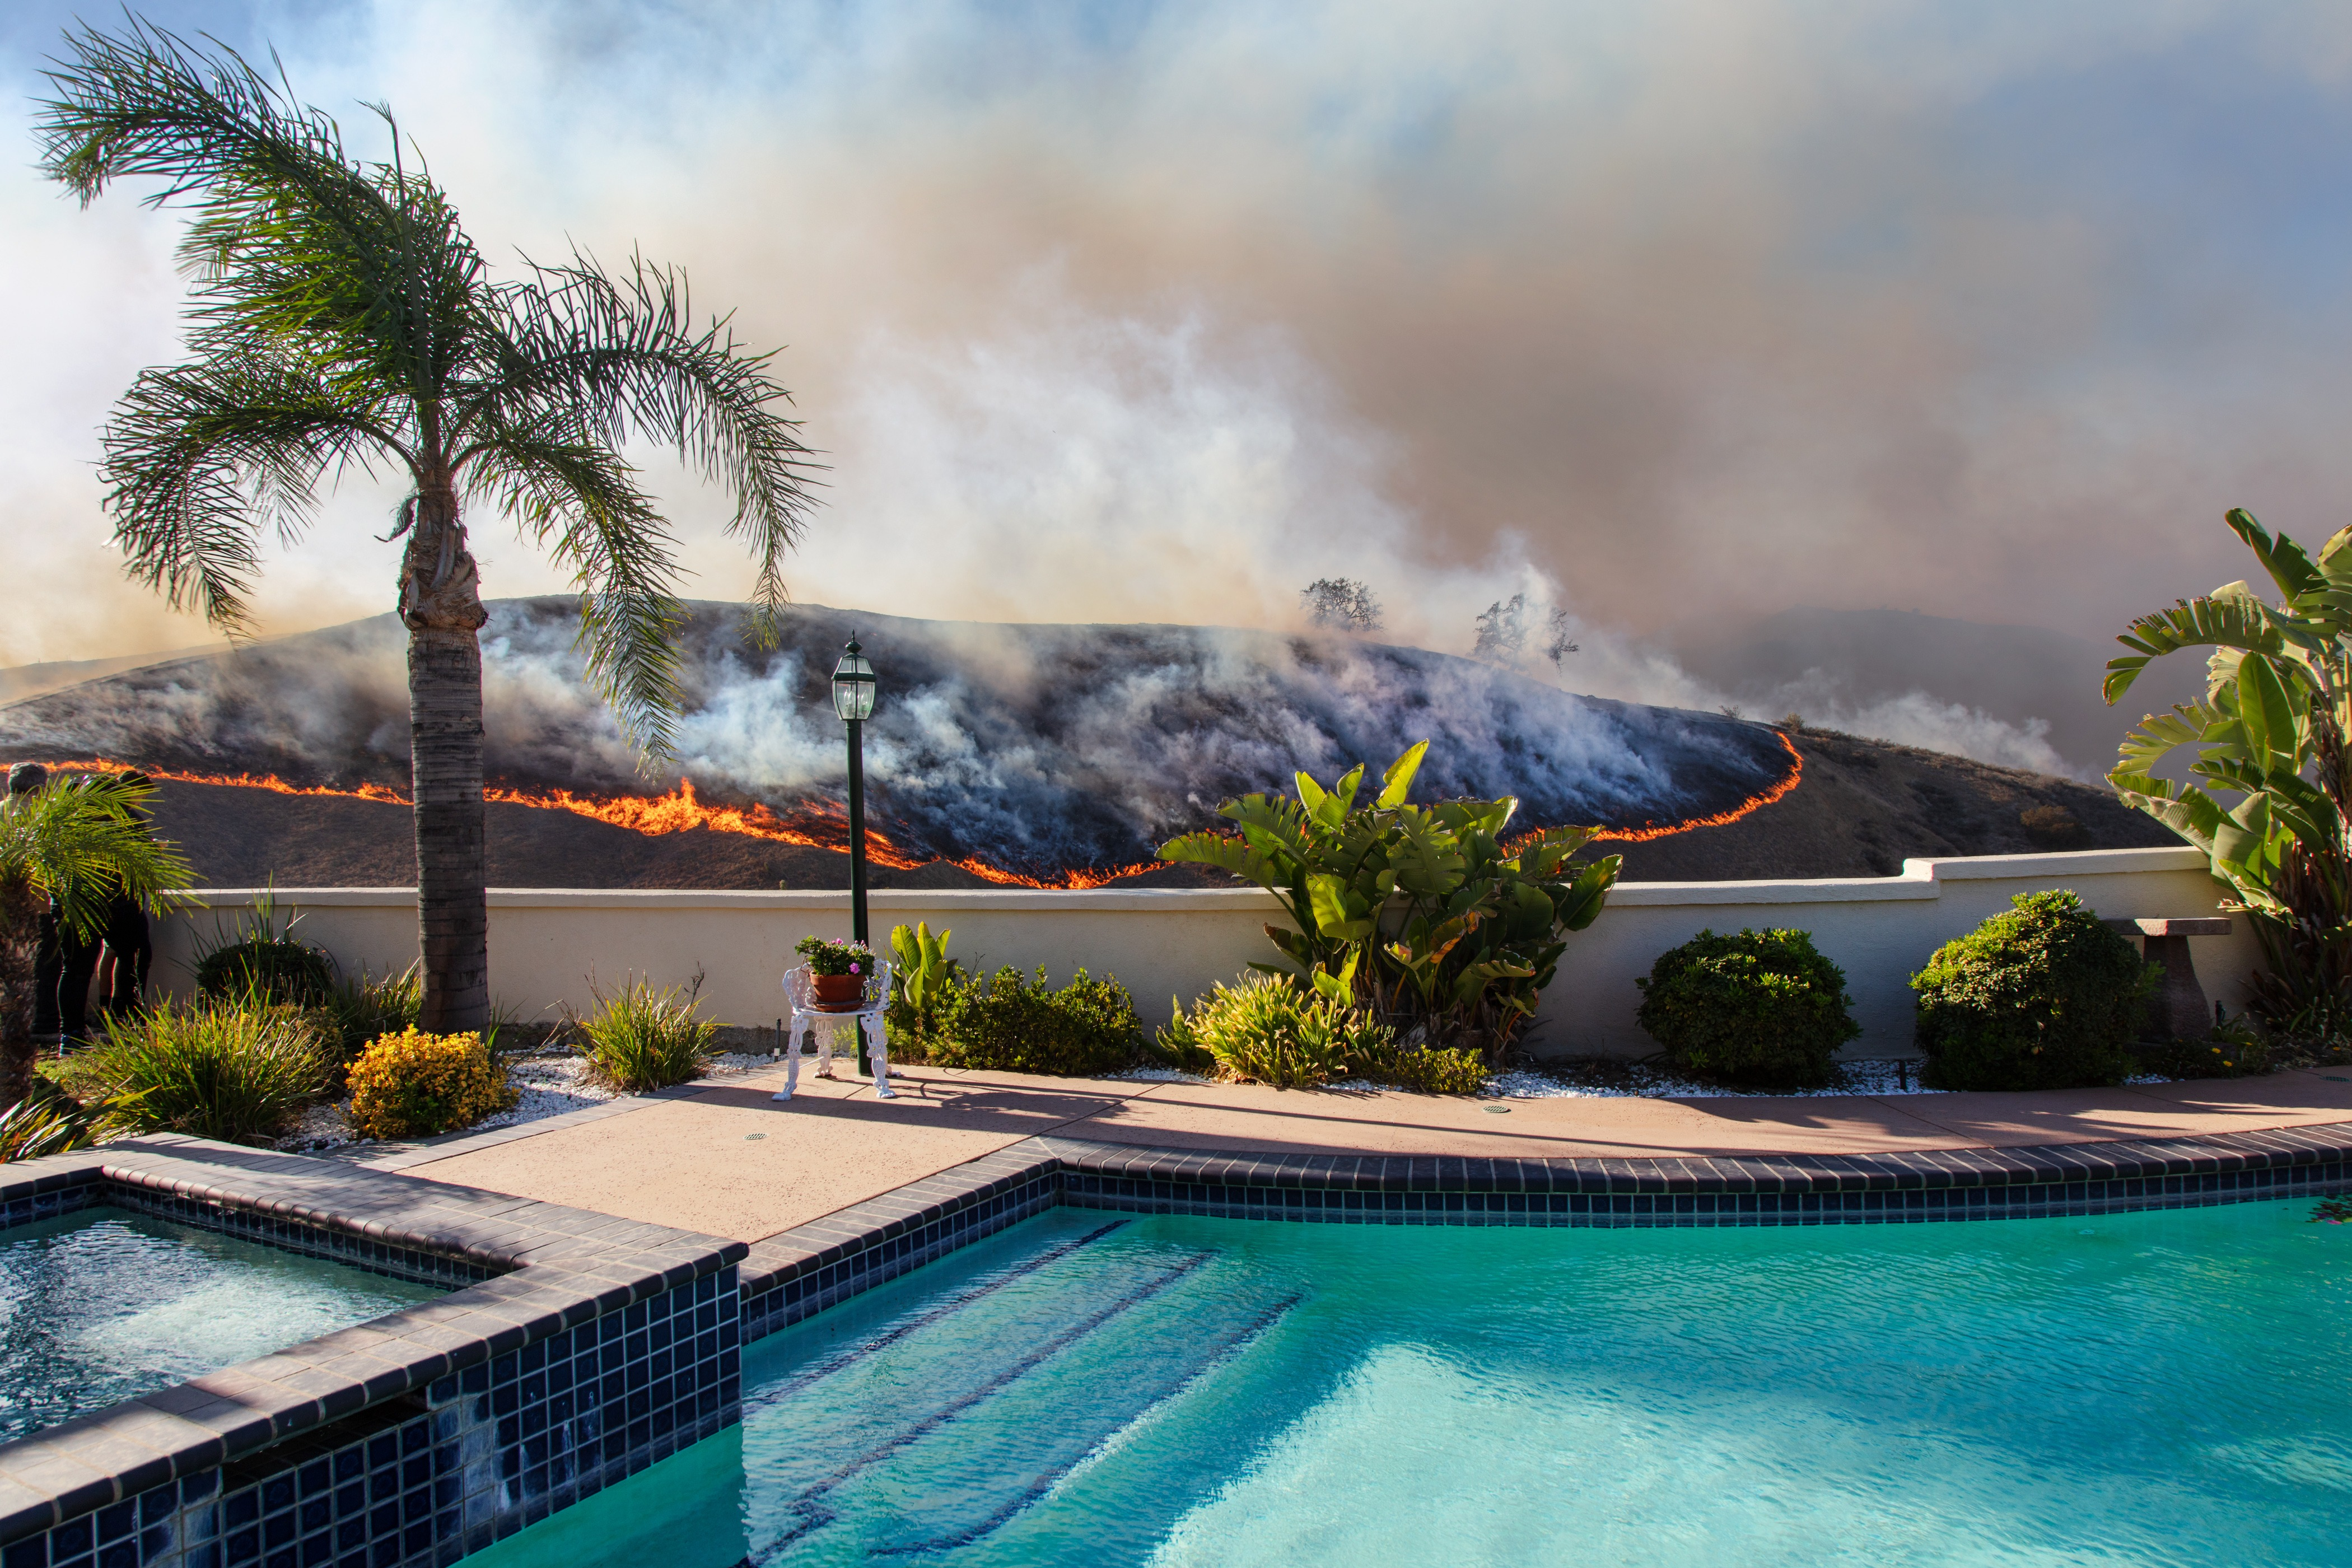 A photograph of a well-kept in-ground swimming pool and landscaped patio, with a wildfire burning on the hill just beyond its wall.